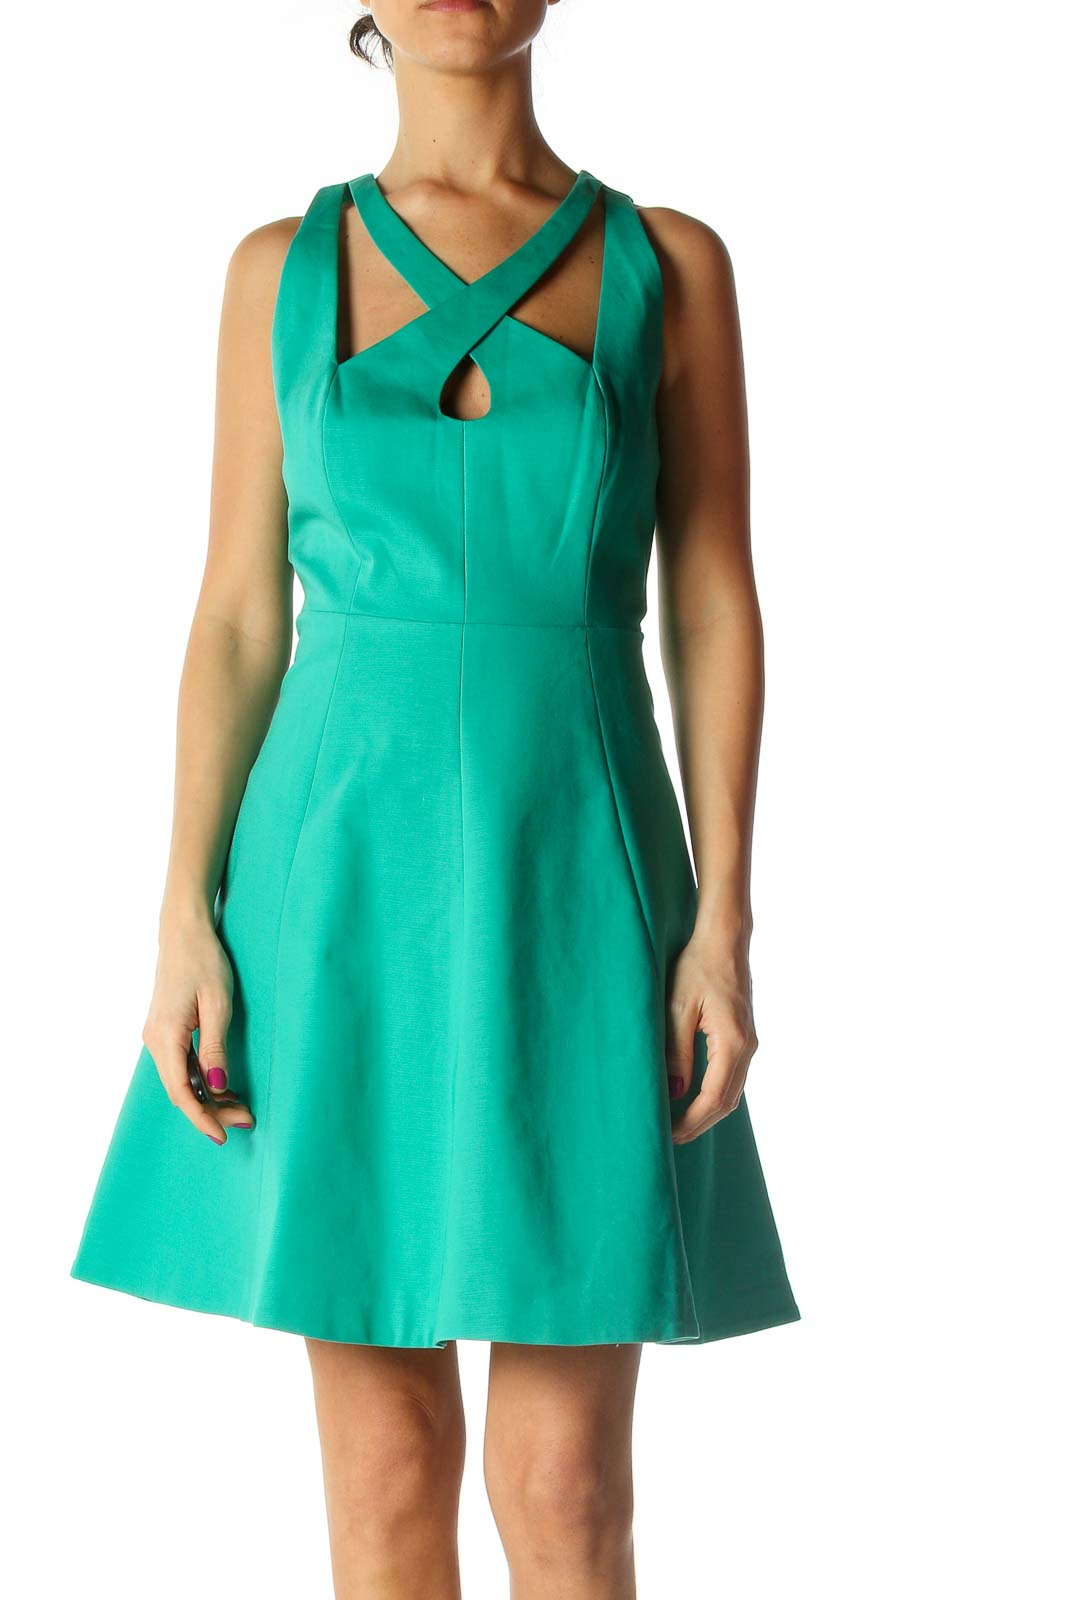 Green Solid A-Line Dress Front